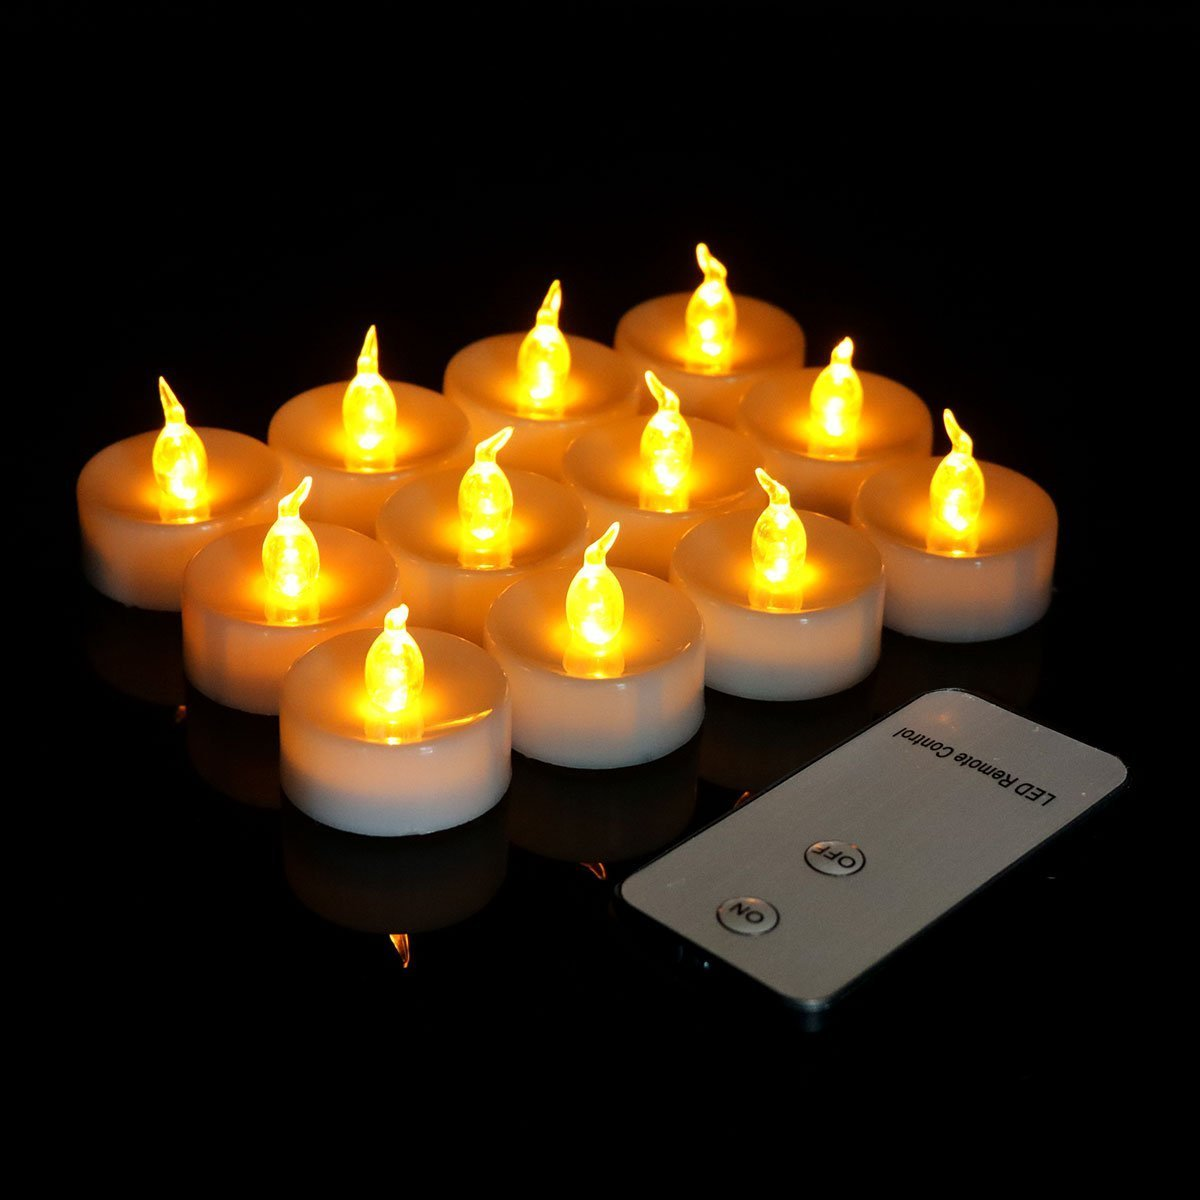 Youngerbaby 12pcs Yellow Flameless Led Tea lights Candle with Remote Control Flickering Realistic Flicker Battery Operated Tea Light Candles for Wedding, Party, Christmas, Thanksgiving,home decor by Youngerbaby (Image #1)